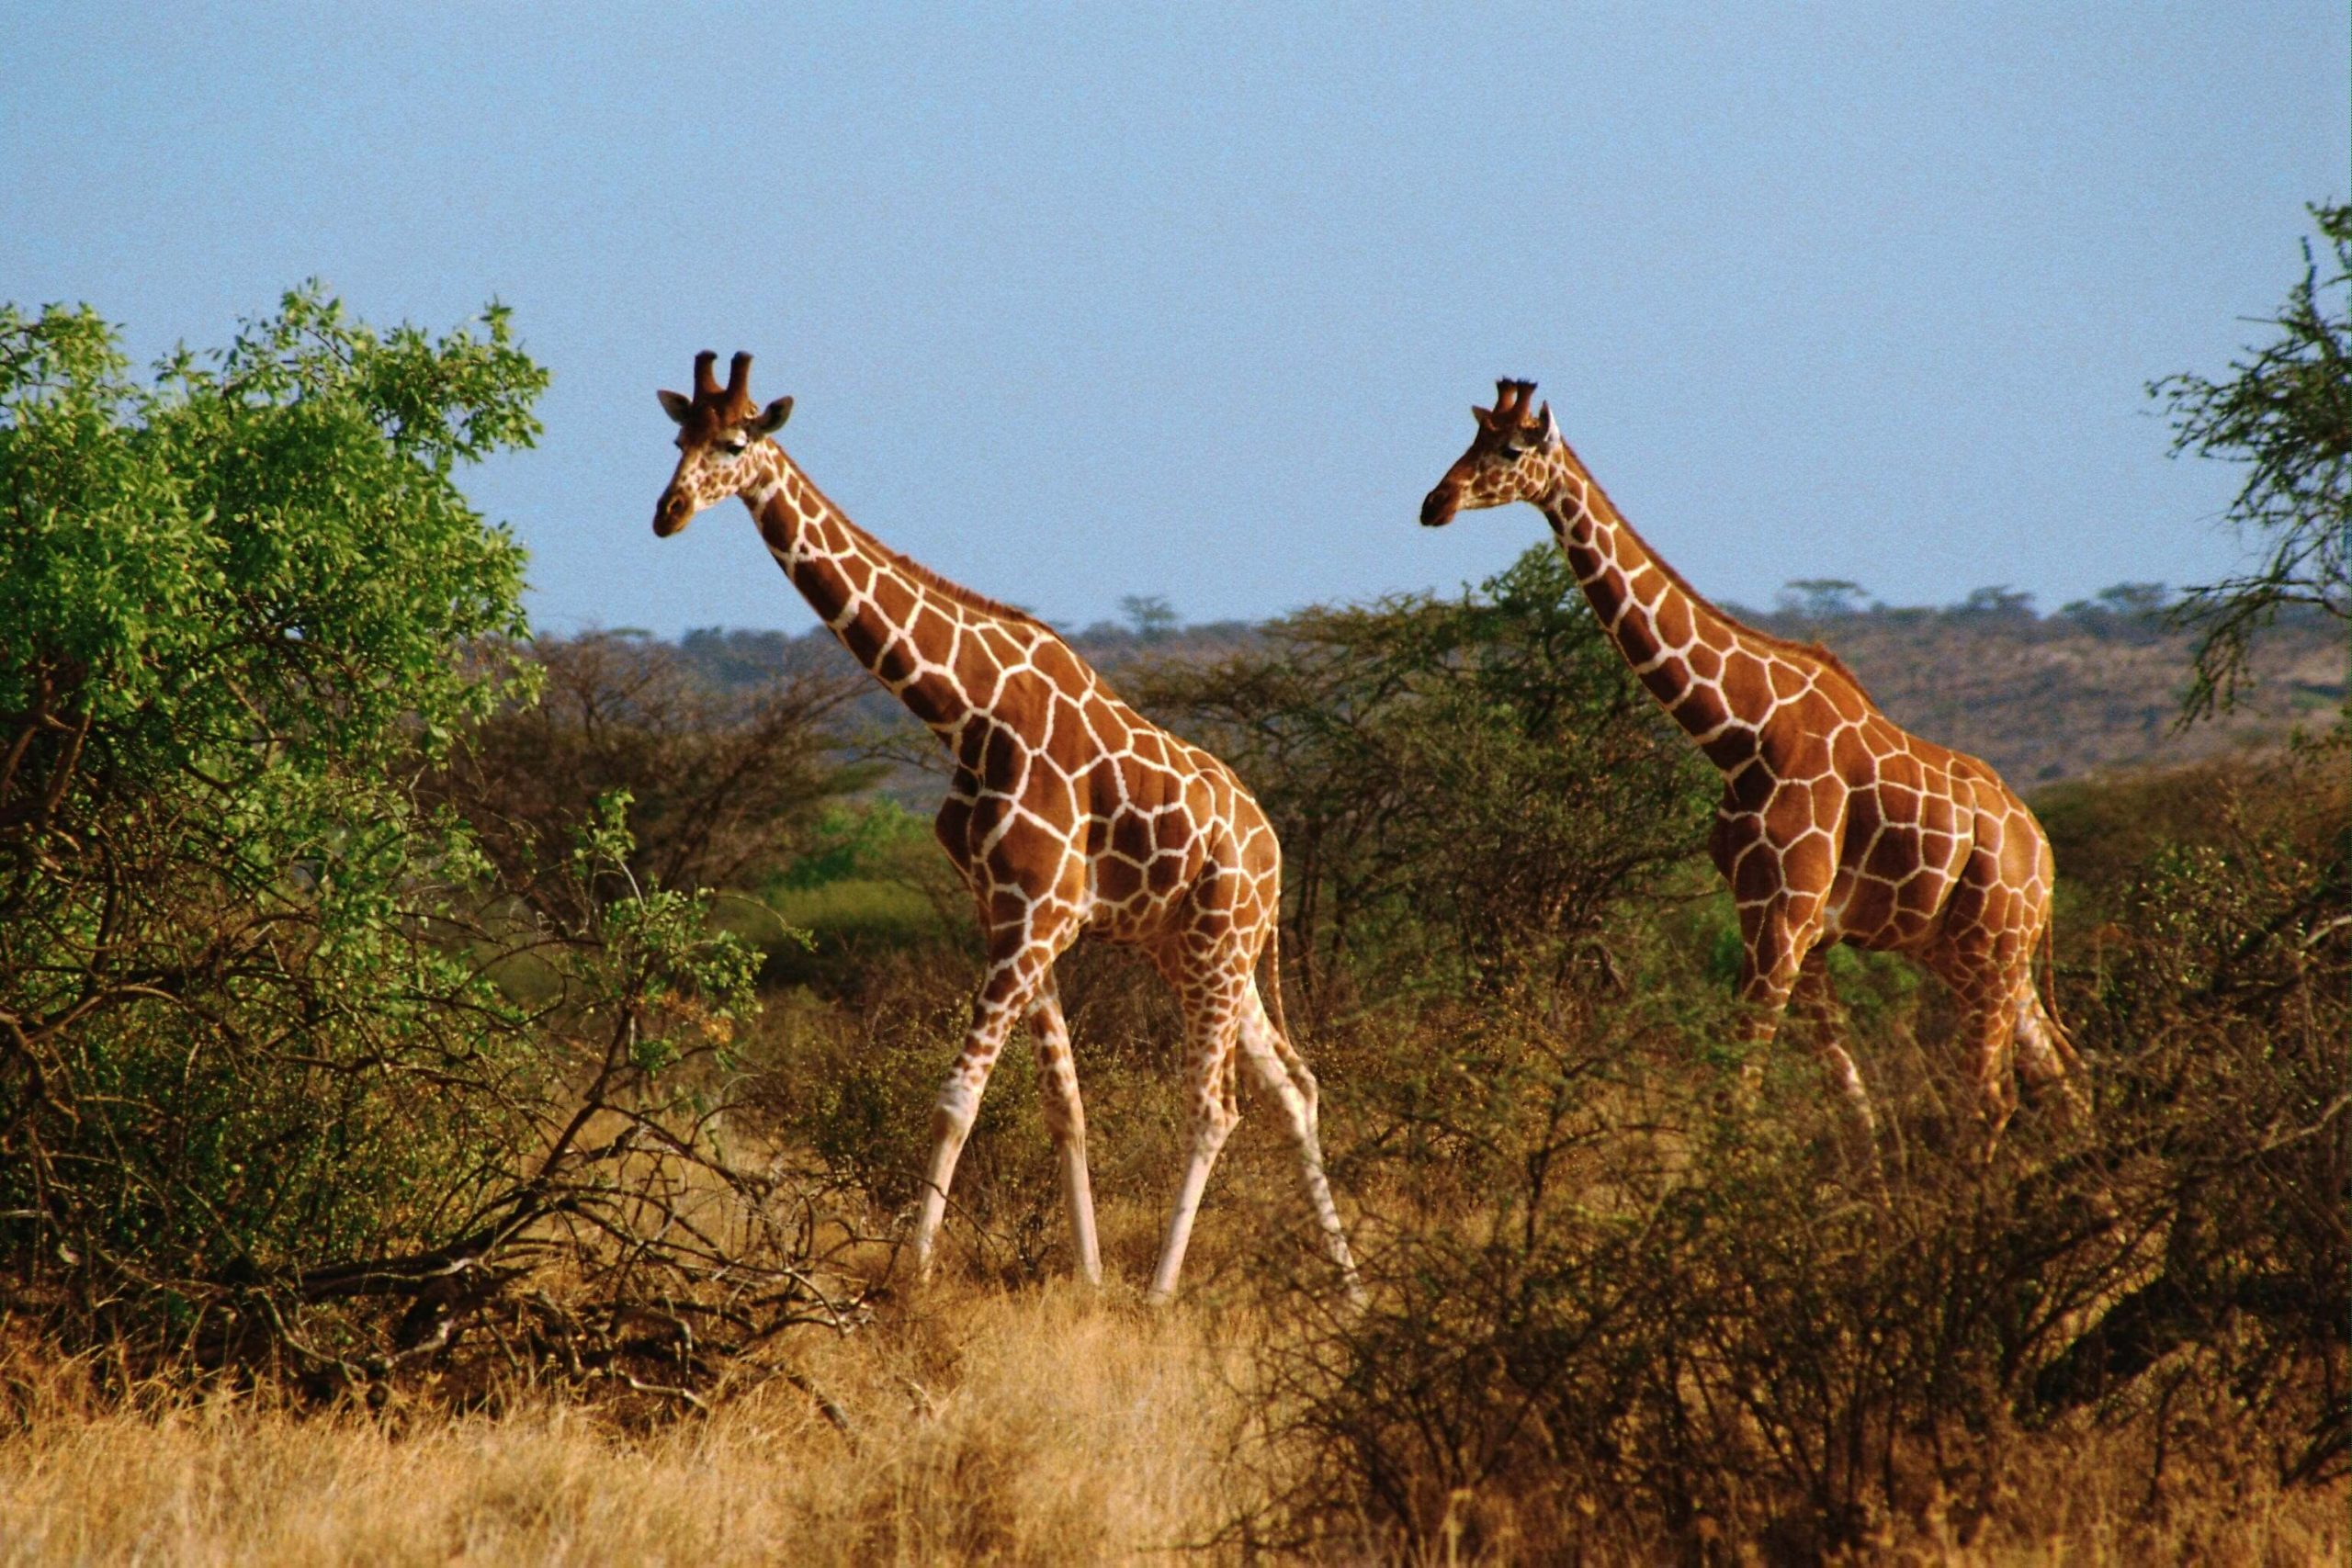 Giraffe images scaled